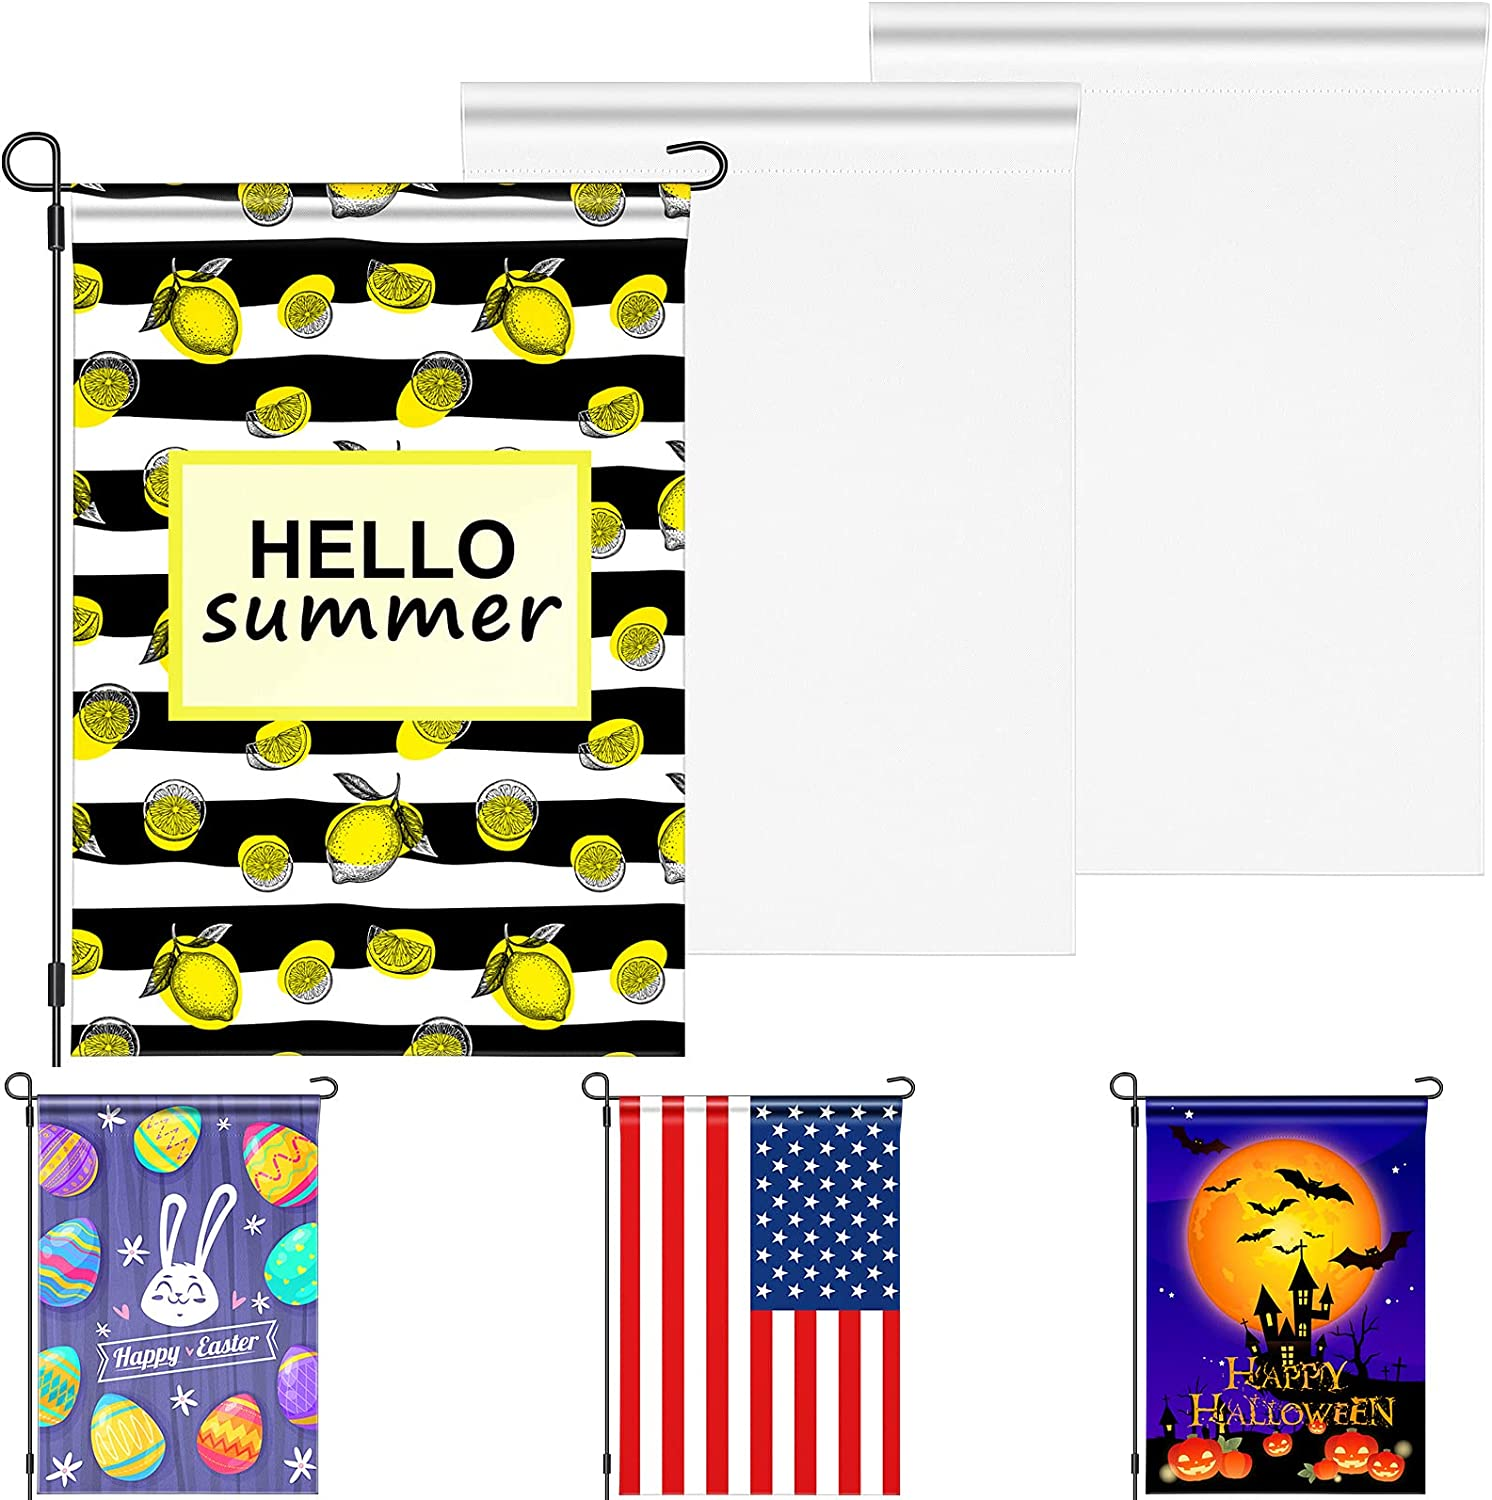 3 Pieces Sublimation Blank Garden Flag Double-Sided DIY Polyester Garden Flags for Outdoor Courtyard Party Home Decoration (3 Pieces,12 x 18 Inch)